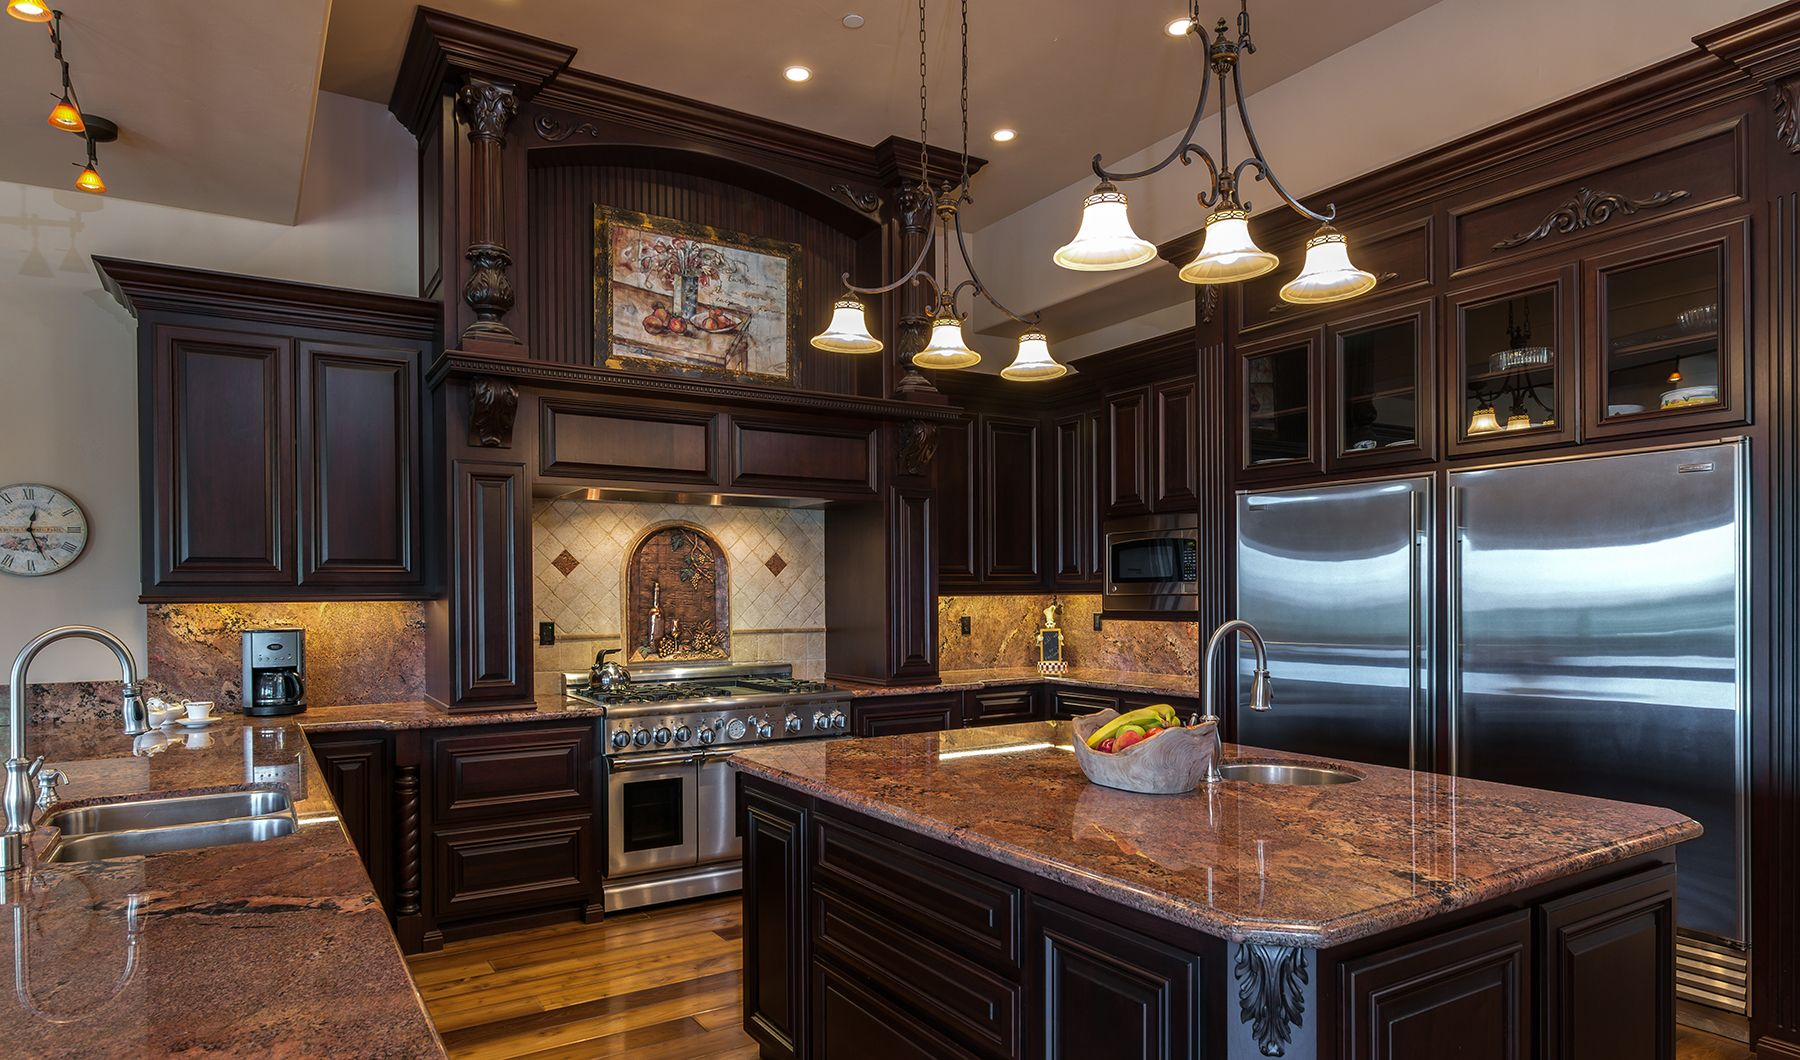 interior commercial kitchen lighting custom. Gourmet Kitchen, Suitable For The Finest Chef With Rich Cabinetry, Granite Countertops, A Interior Commercial Kitchen Lighting Custom